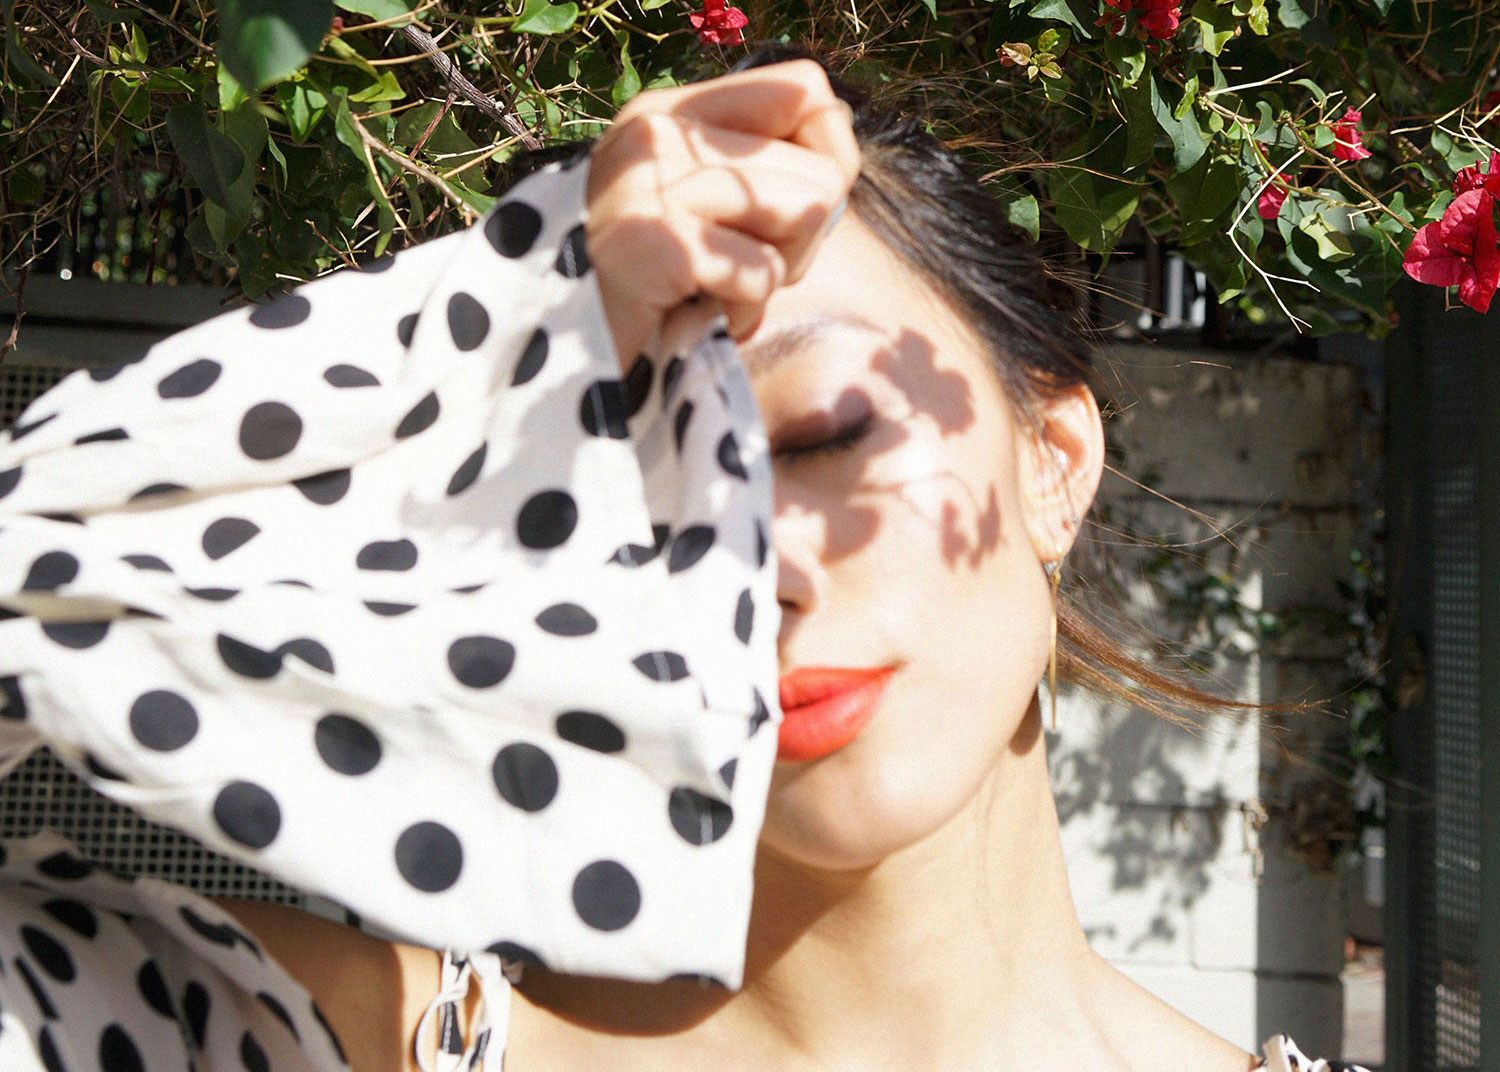 Neon Blush, polka dot scrappy top, cropped top, crop top, polkadot, black and white, bougainvillea, Los Angeles, EGGIE Jenn Im festival collection, EGGIE SHOP, eggie US, fashion, personal style, photography